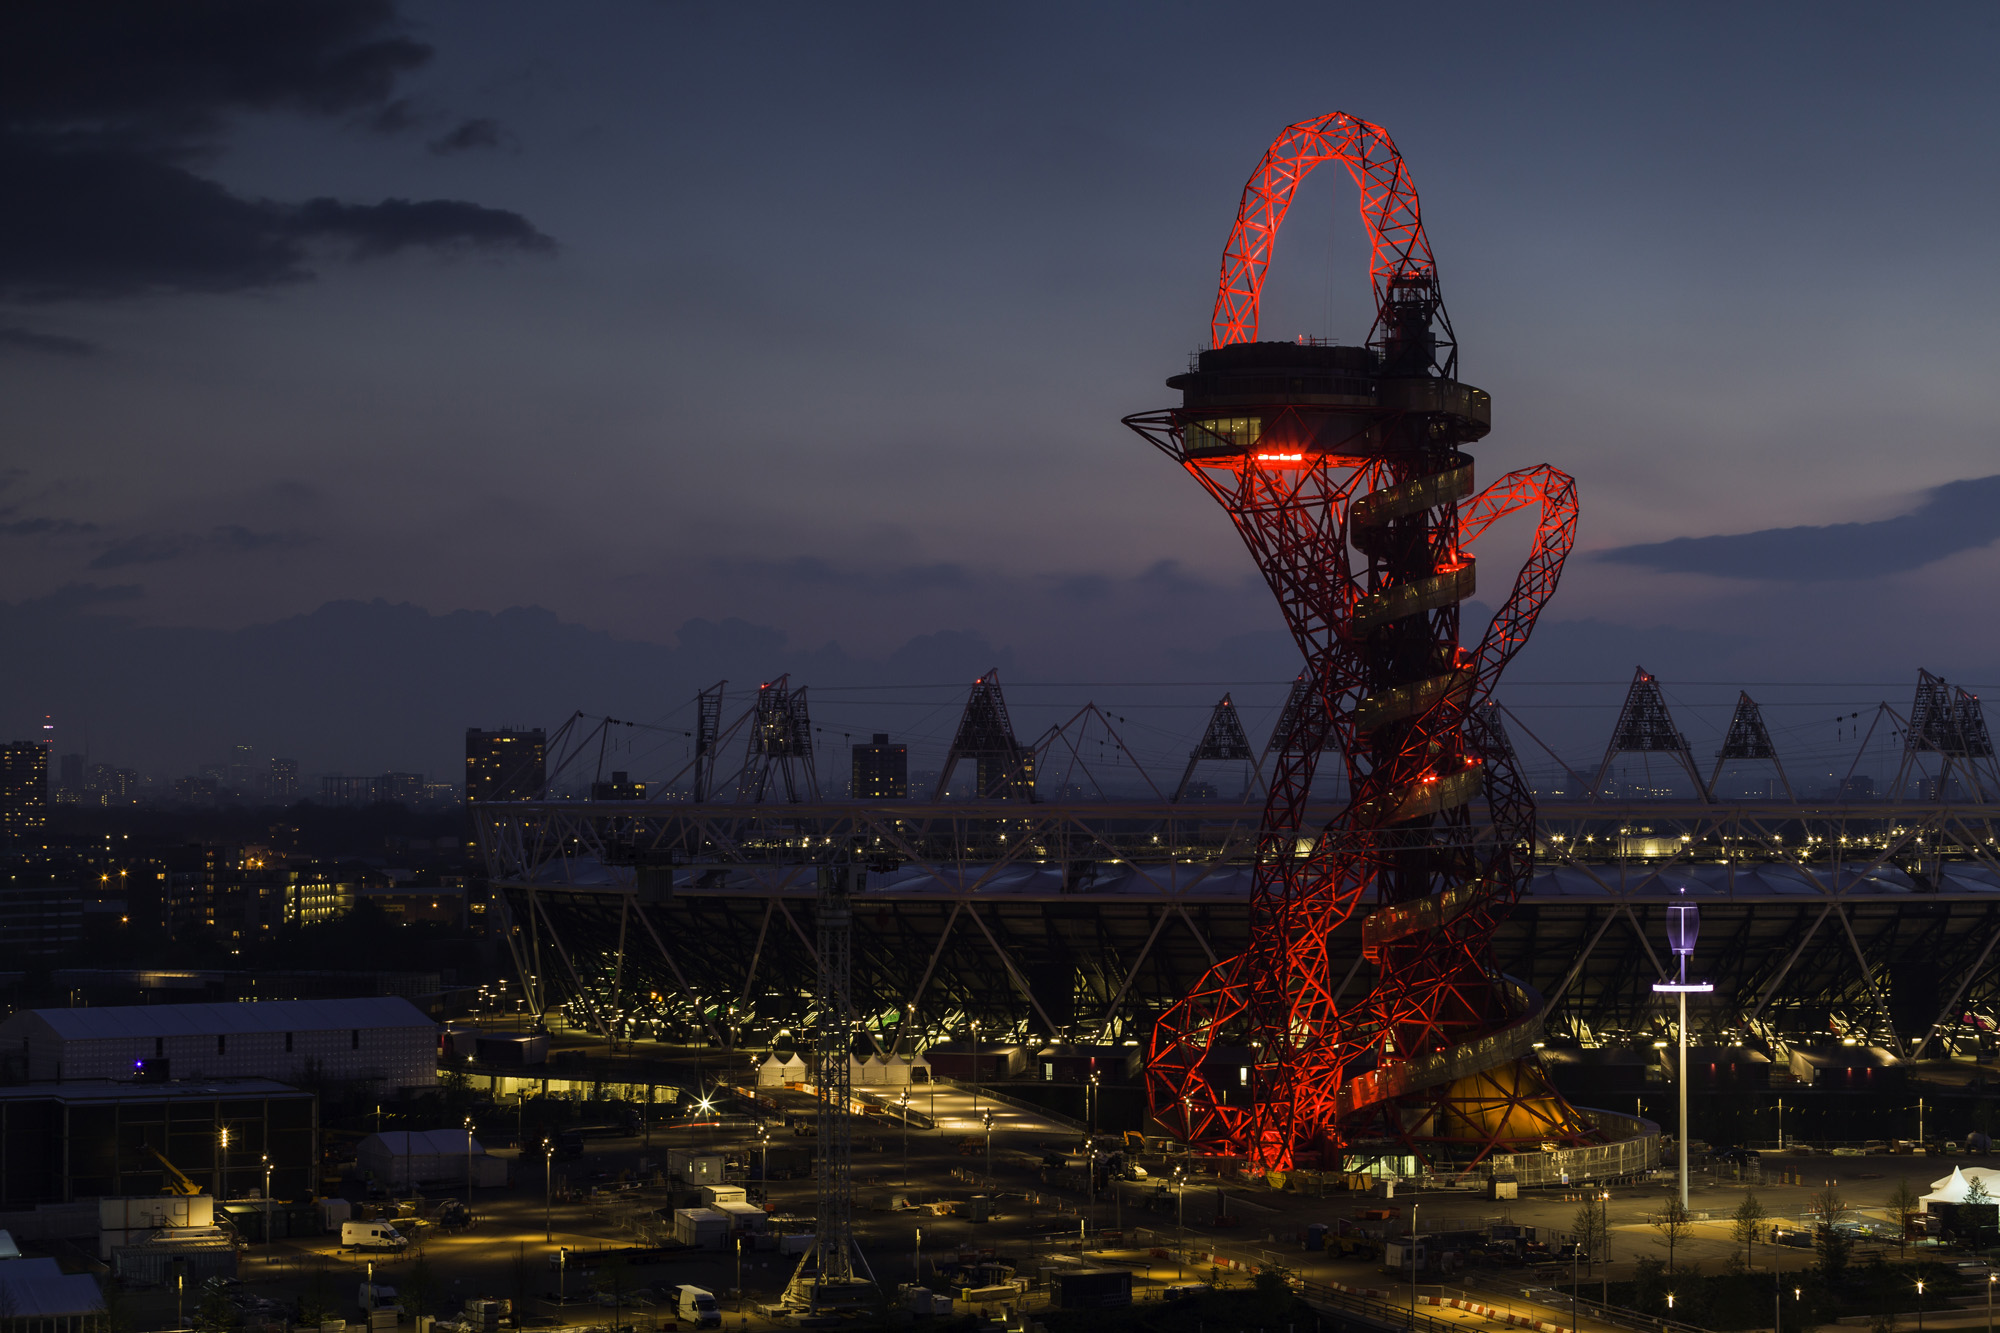 orbit by anish kapoor studio and cecil balmond, great britain, landmark, crazy architecture